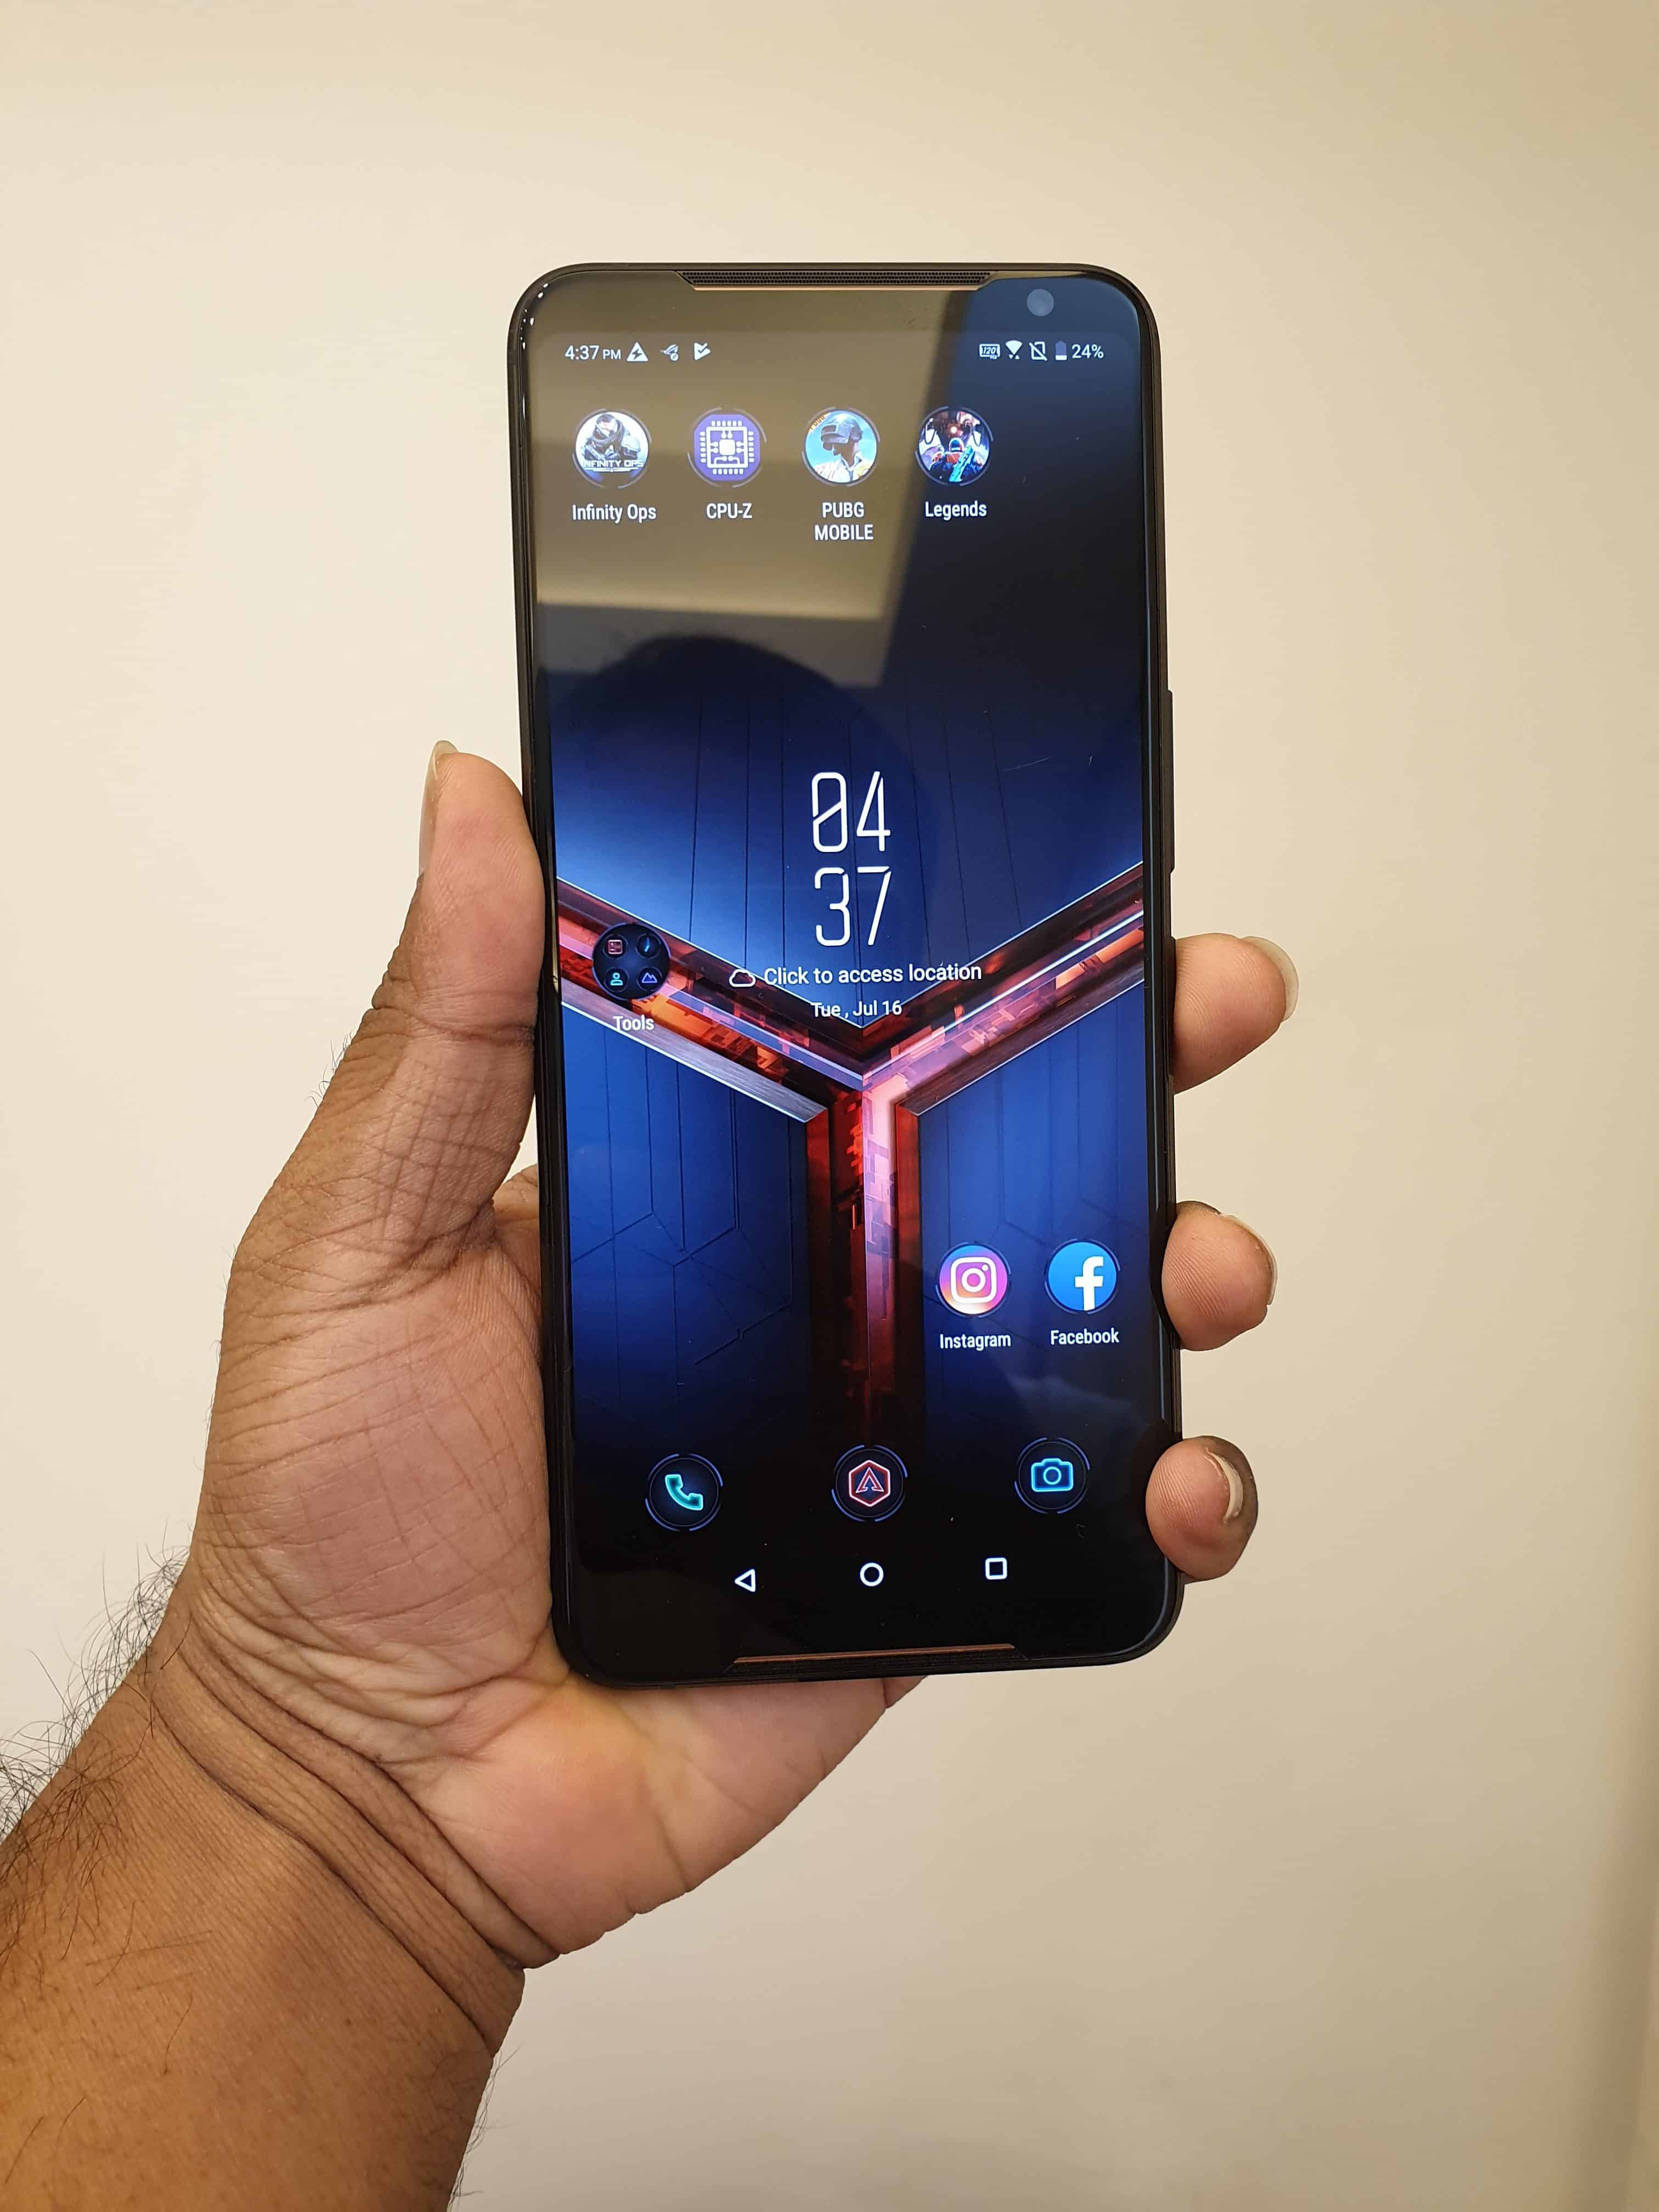 ROG Phone II Hands-on Review - My First Impressions On the Next-Gen Gaming Phone - 2